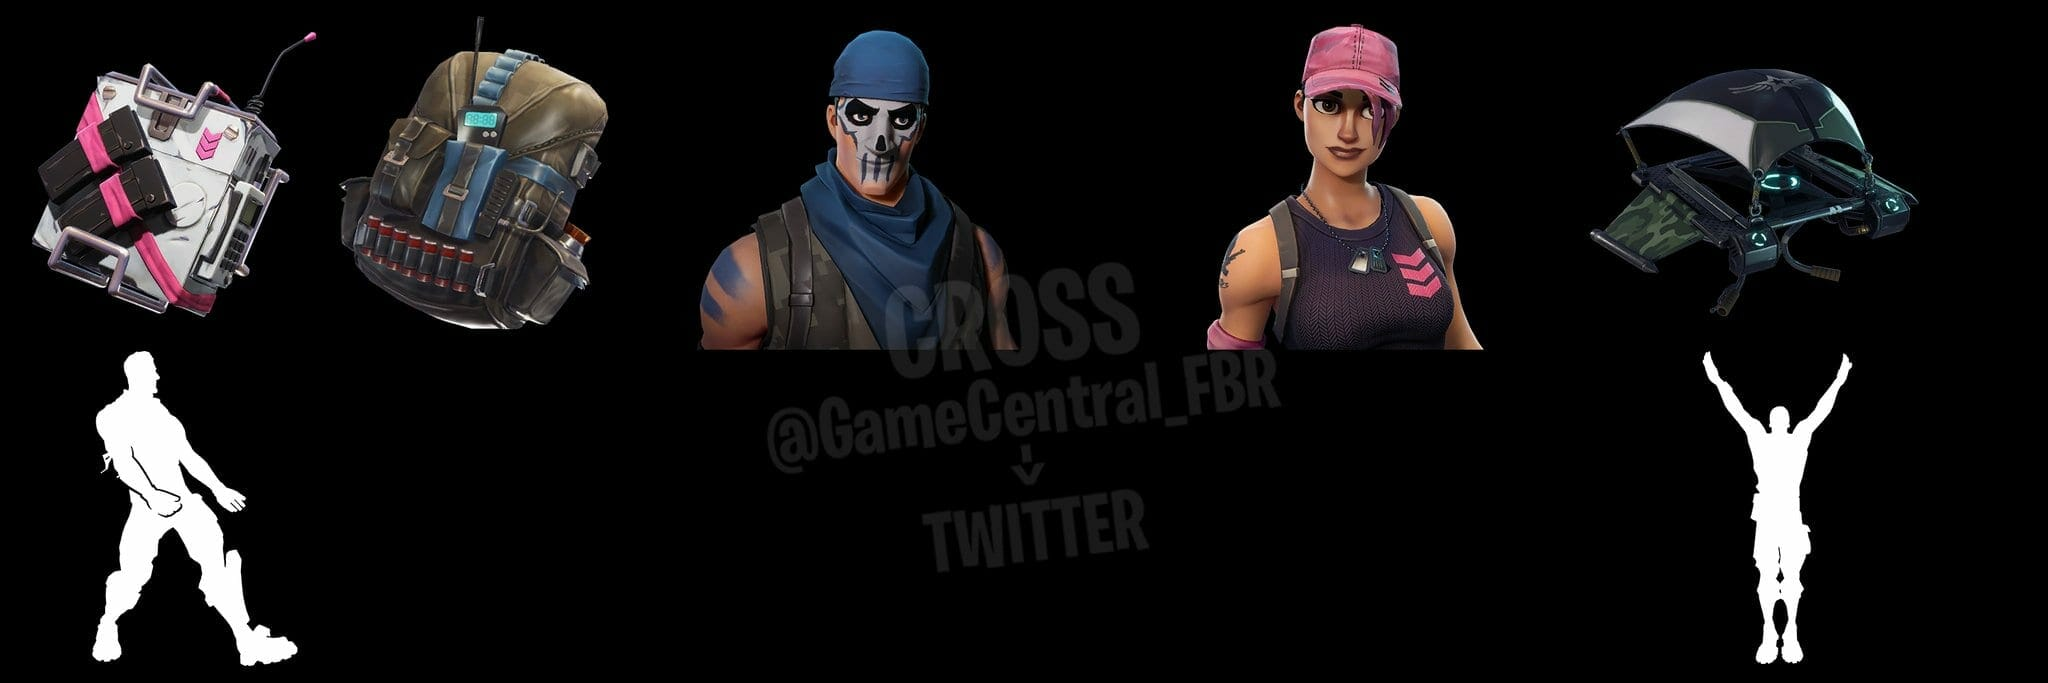 Rumor Fortnite Skins Leaked Will Be Rewarded To Save The